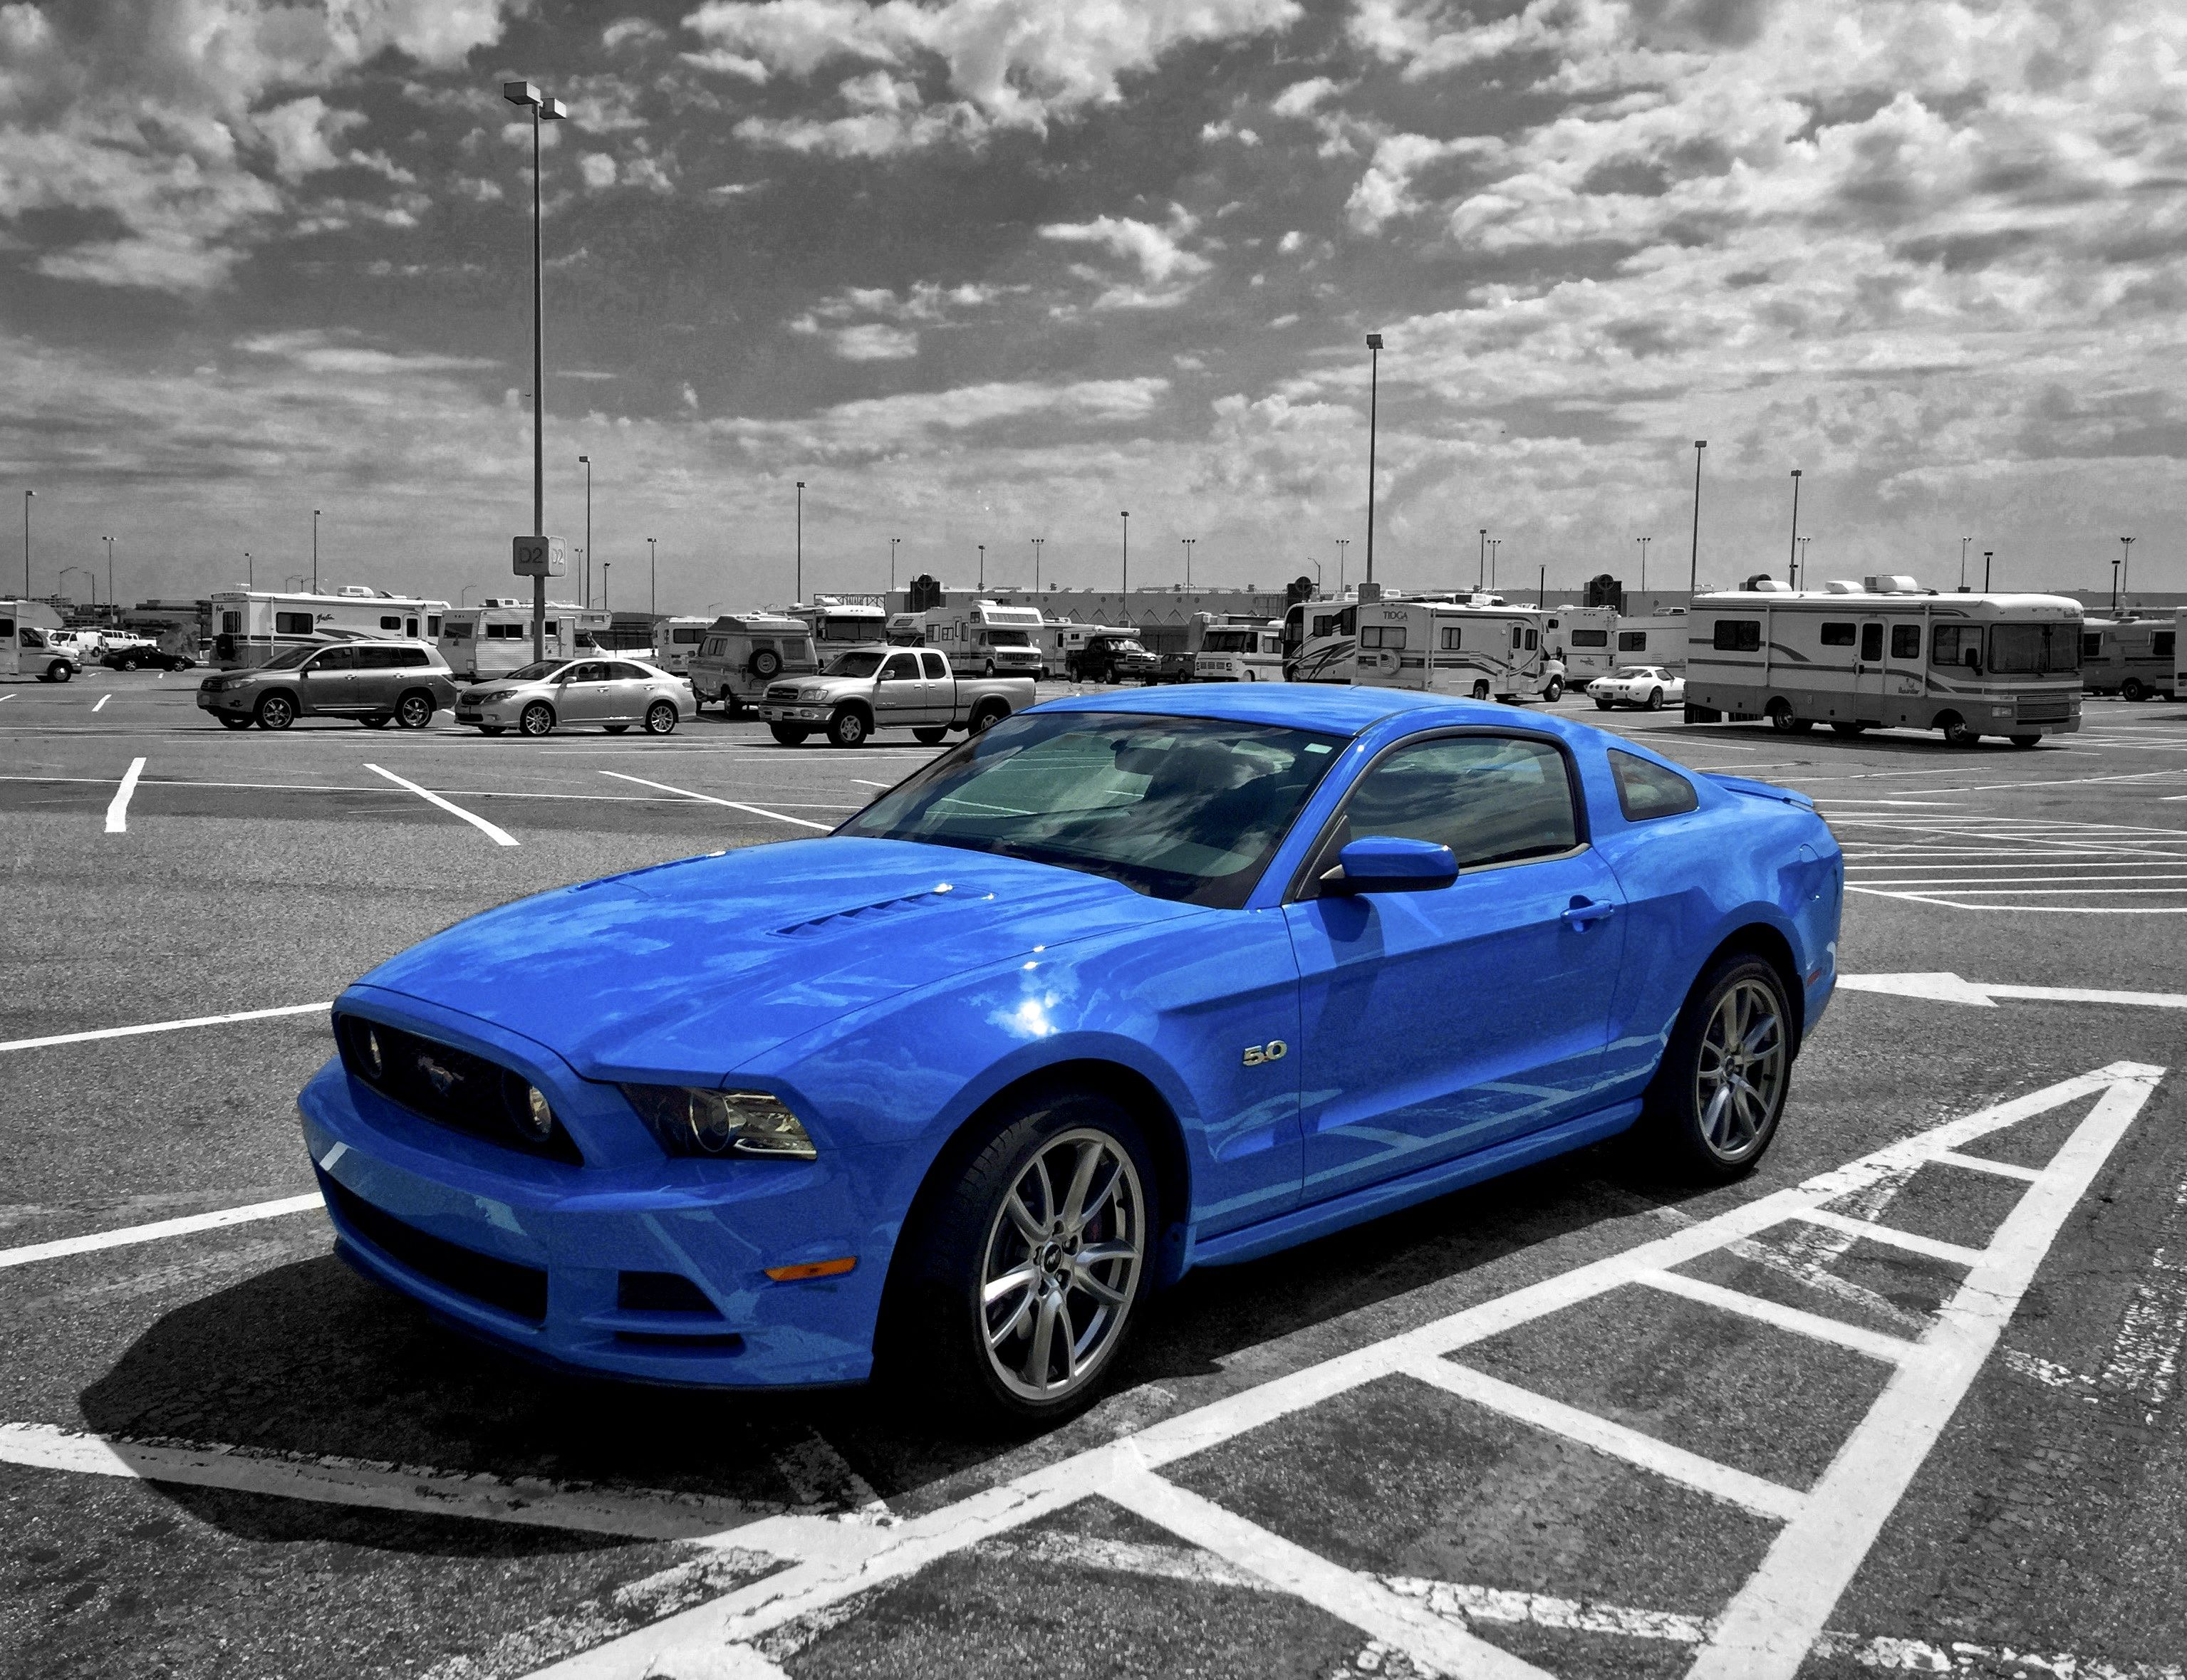 Grabber Blue Ford Mustang 2015 Ford Mustang Blue Mustang 2015 Ford Mustang